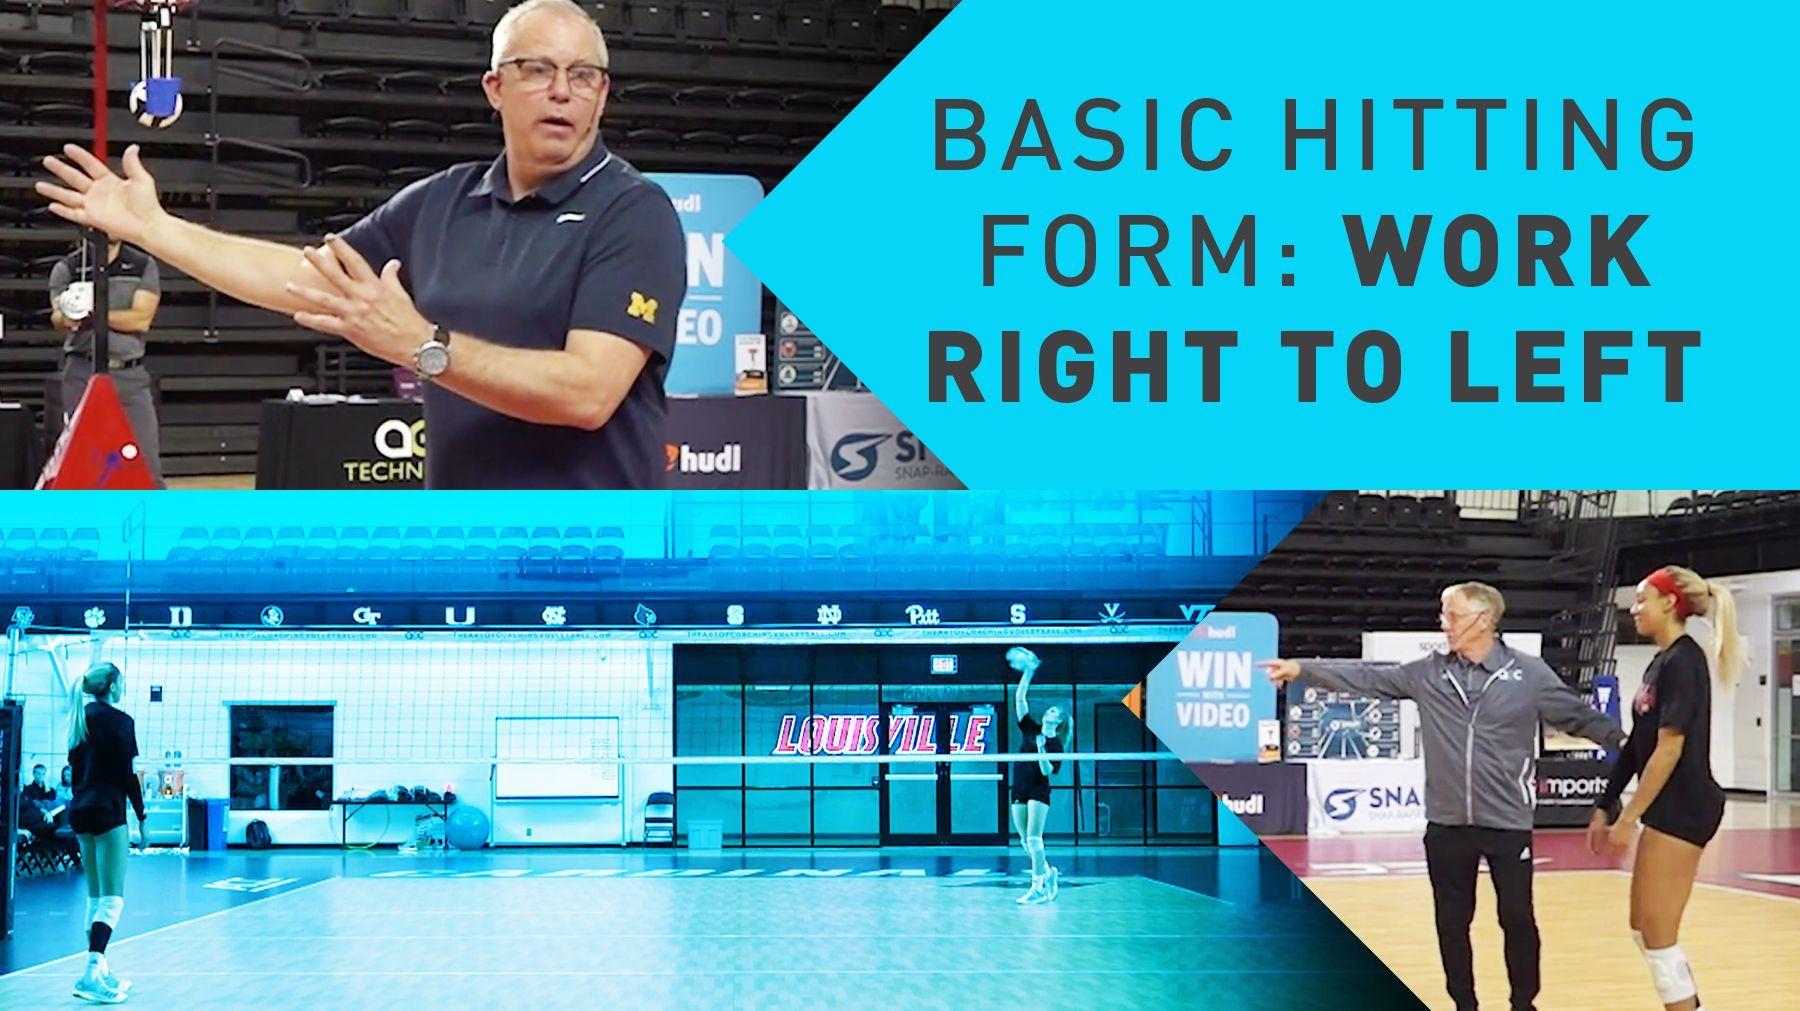 Basic Hitting Form Work Right To Left The Art Of Coaching Volleyball Coaching Volleyball Volleyball Drills Basic